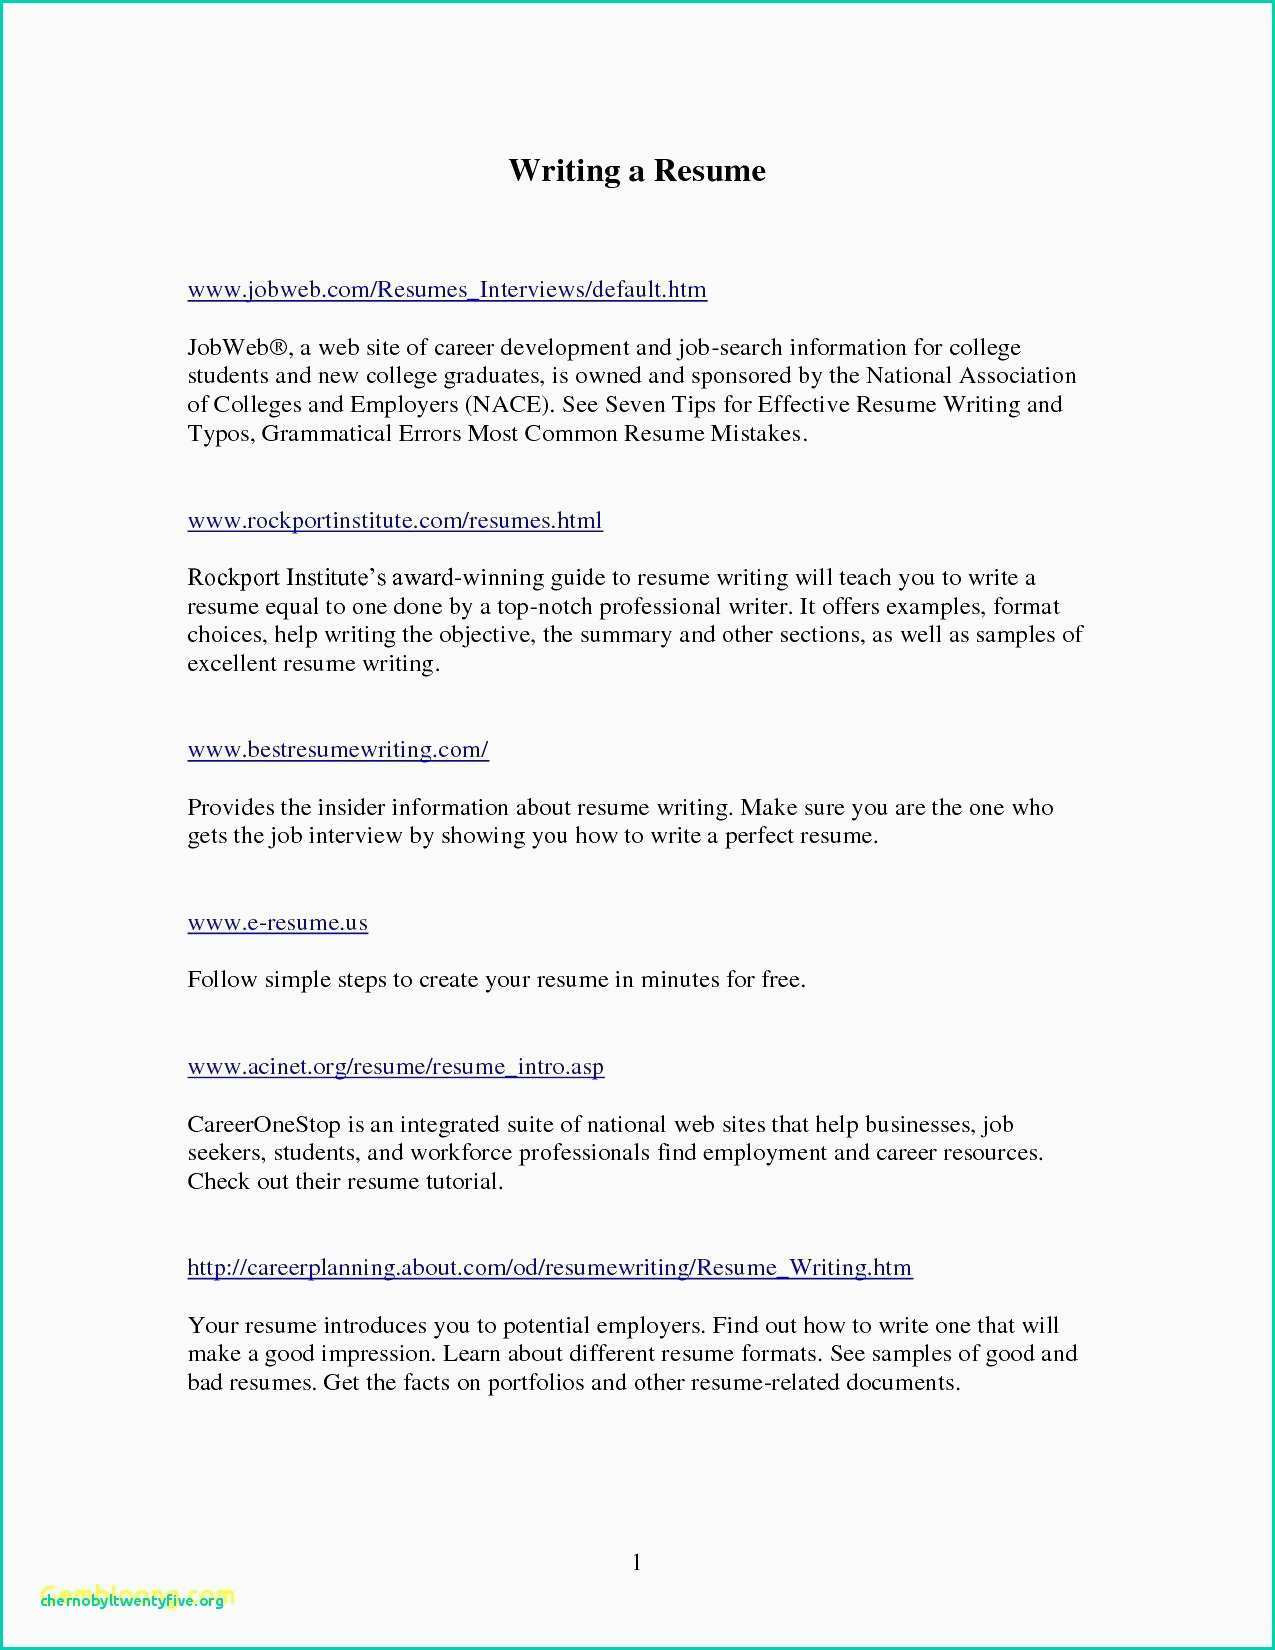 Social Work Resume Template Free - 77 Designs social Work Resume Template